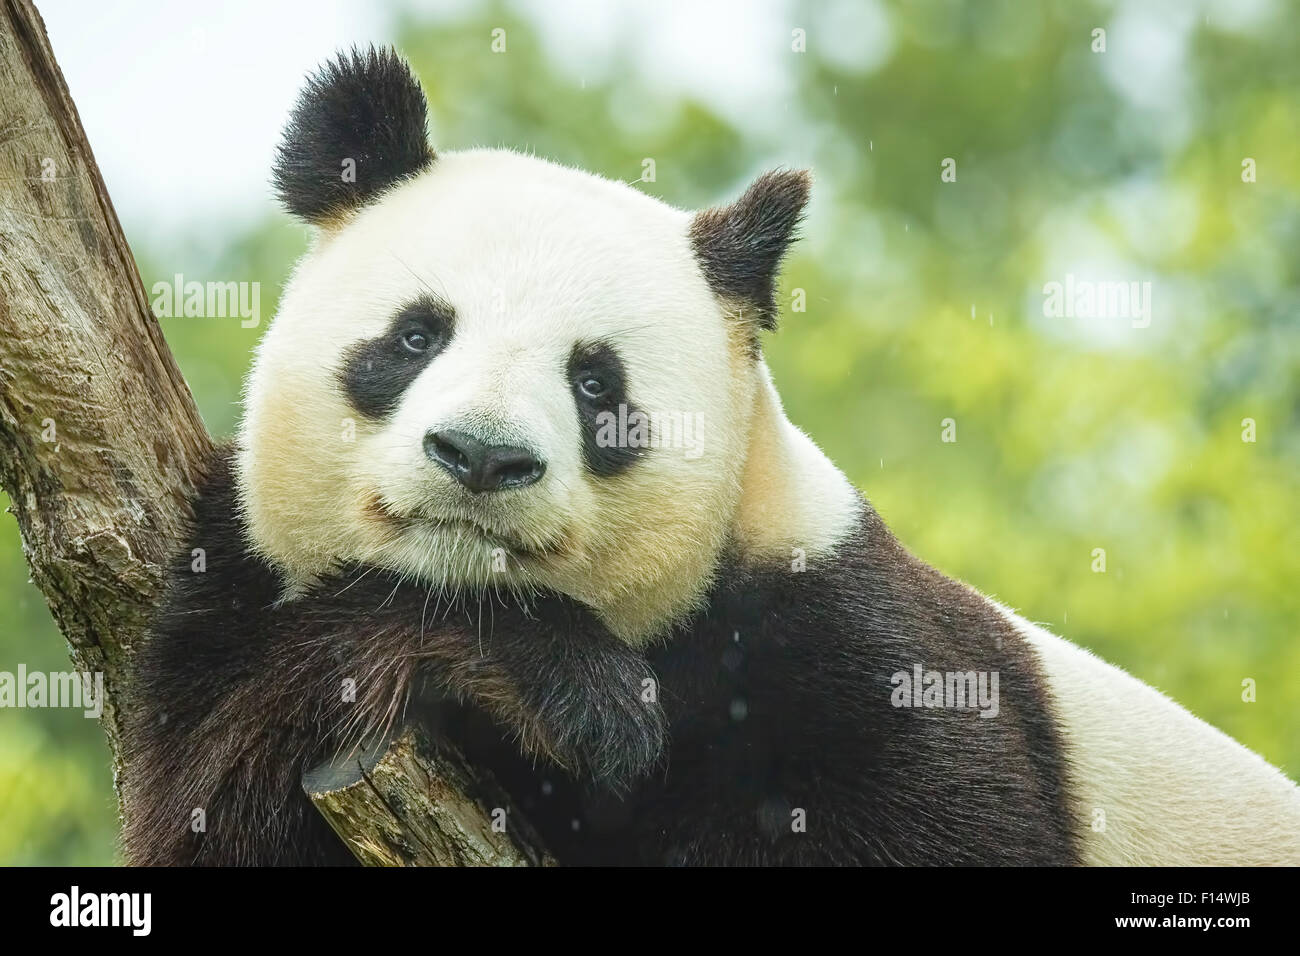 Portrait of a Giant panda bear during the rain in a forest after eating bamboo - Stock Image